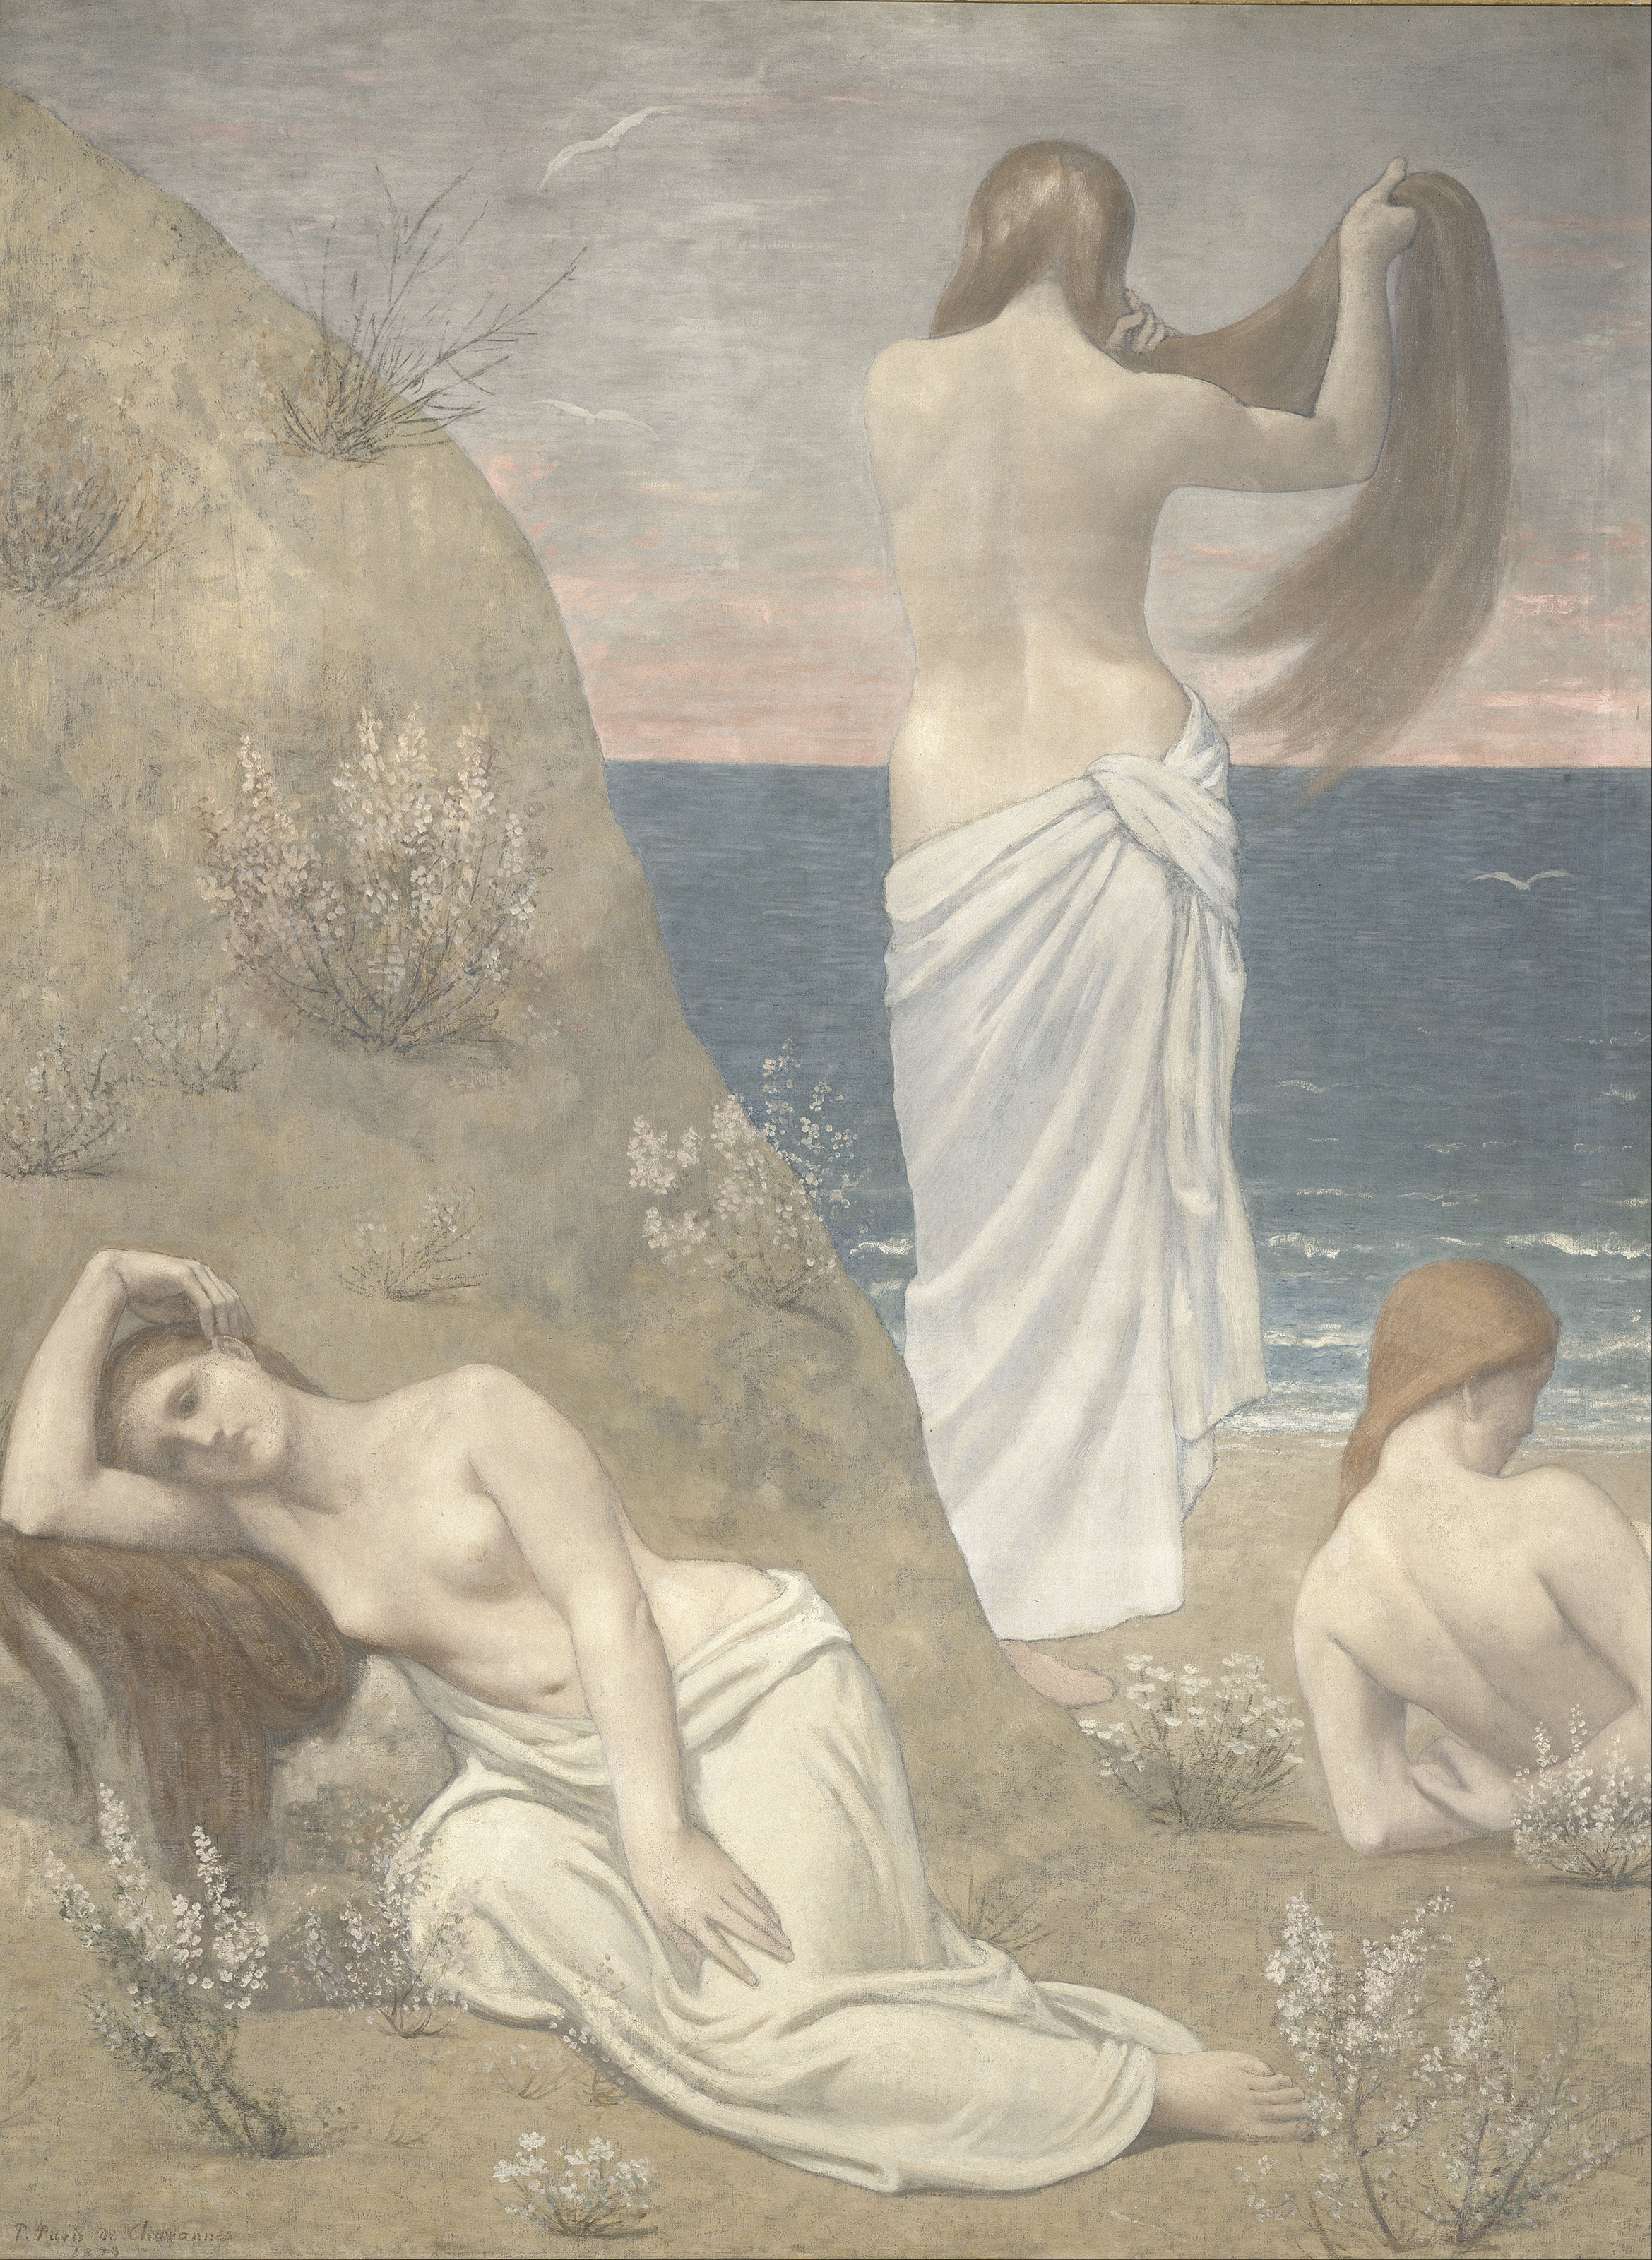 Young Girls by the Seaside, 1879 — Pierre Puvis de Chavannes